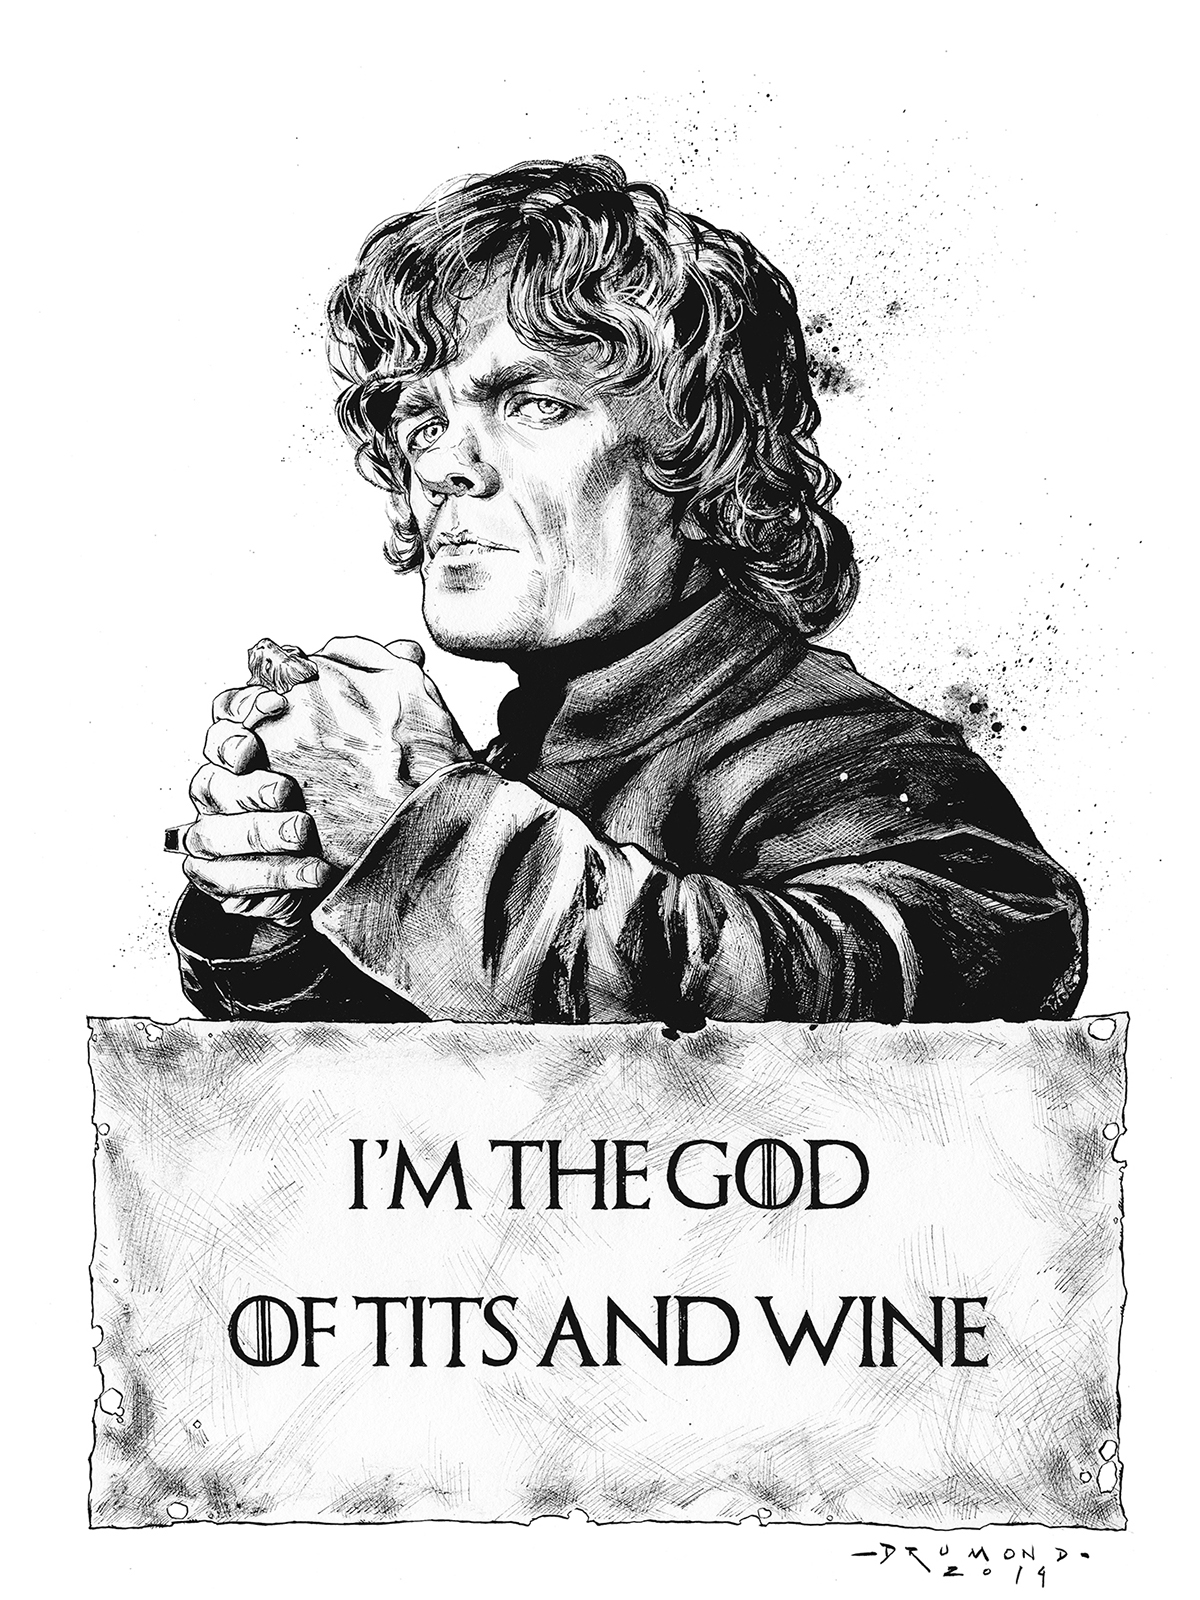 Game of Thrones by Drumond Art - Tyrion Lannister